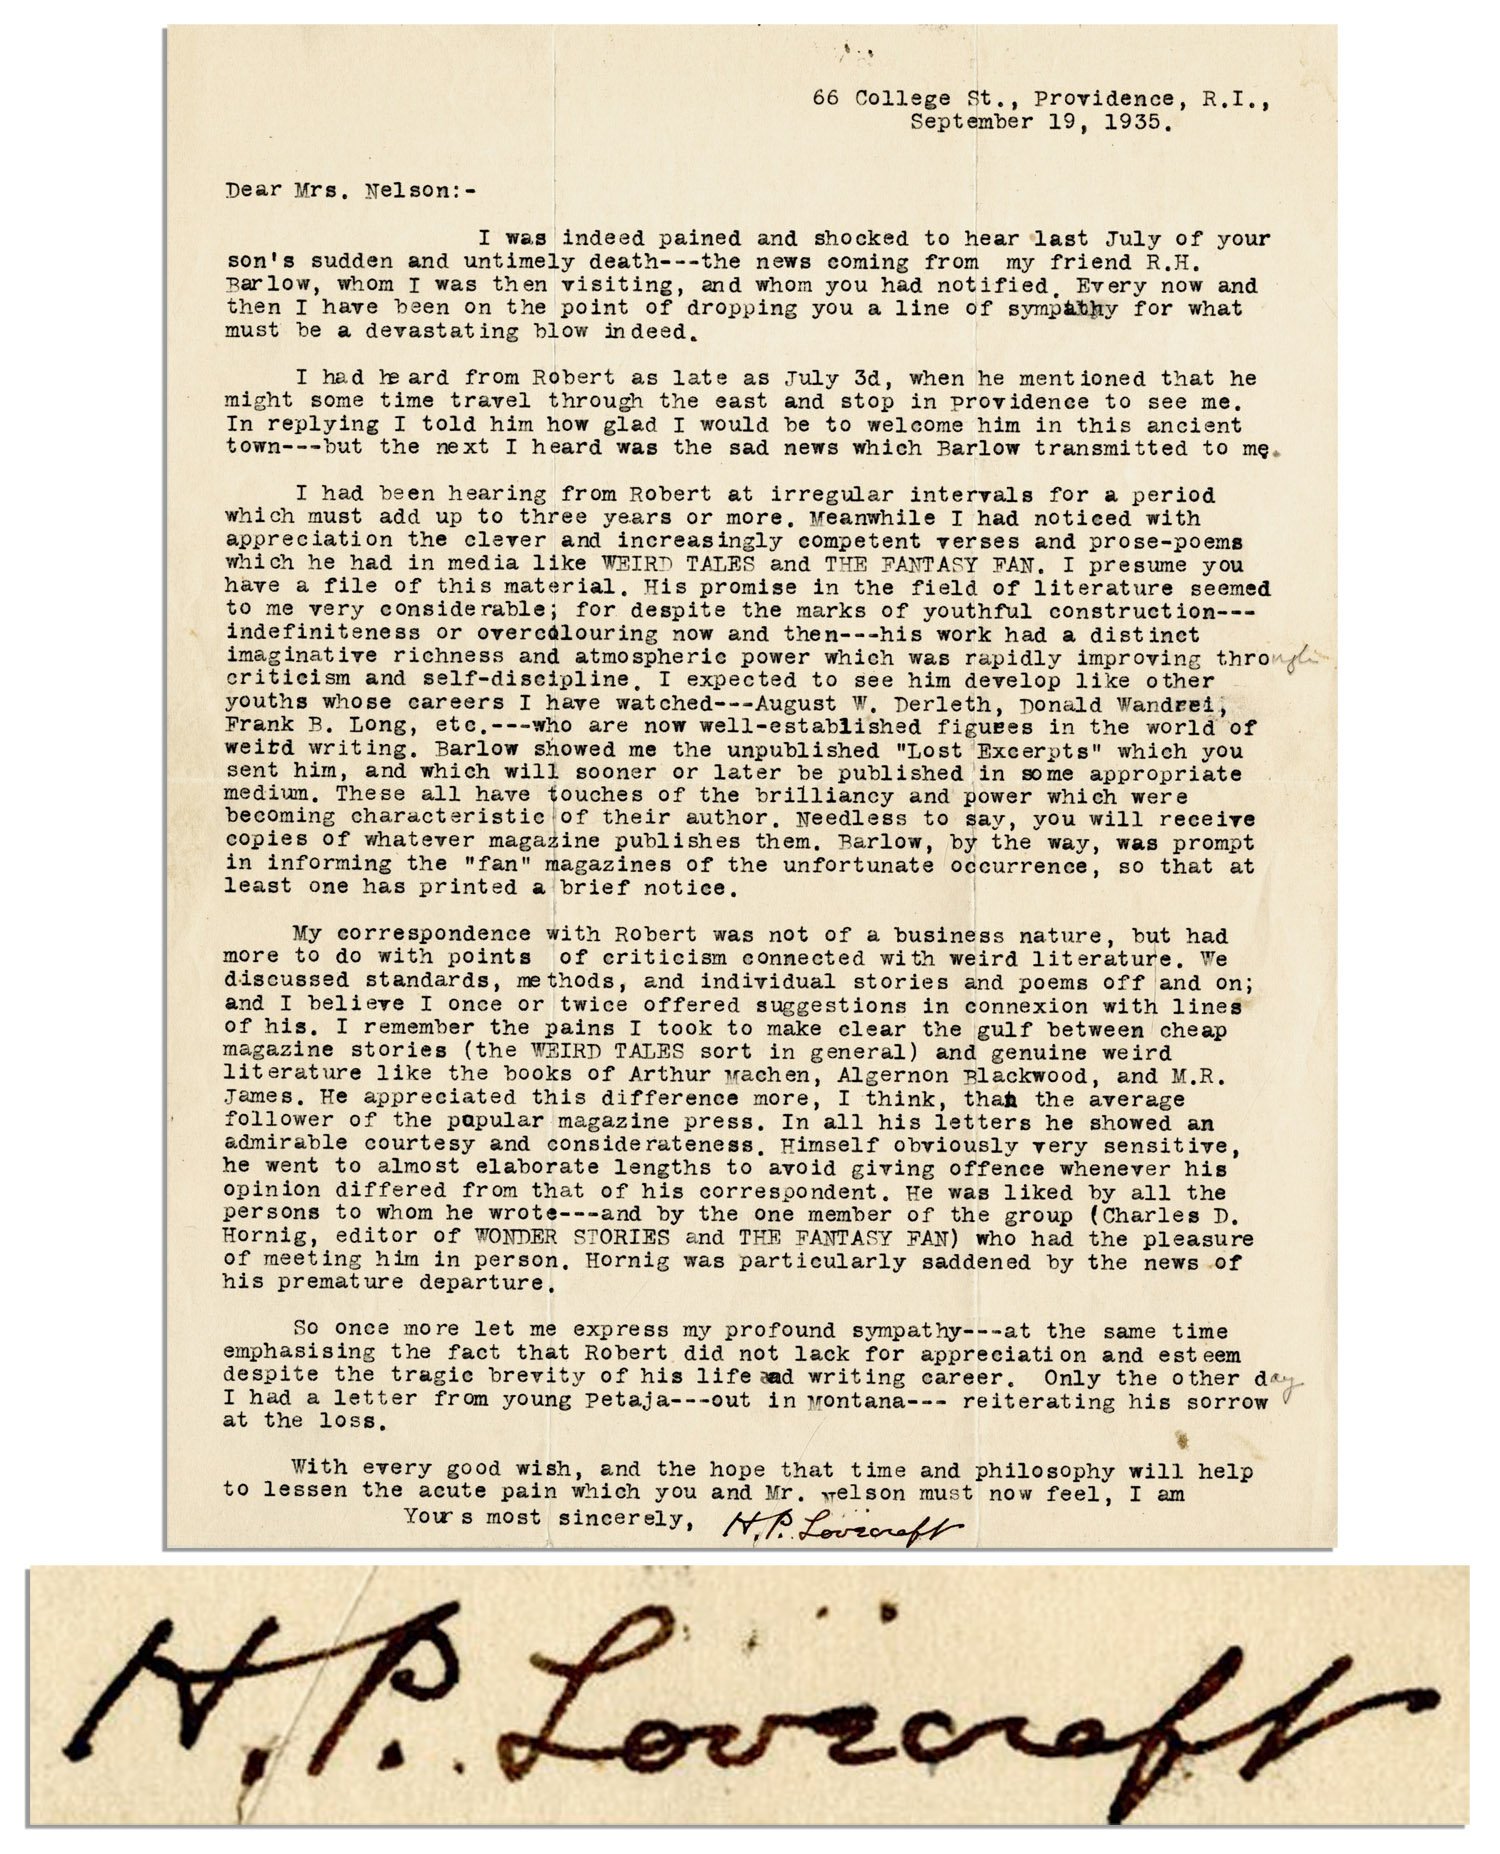 HP Lovecraft First Edition H.P. Lovecraft Letter Signed on the Death of a Young Writer